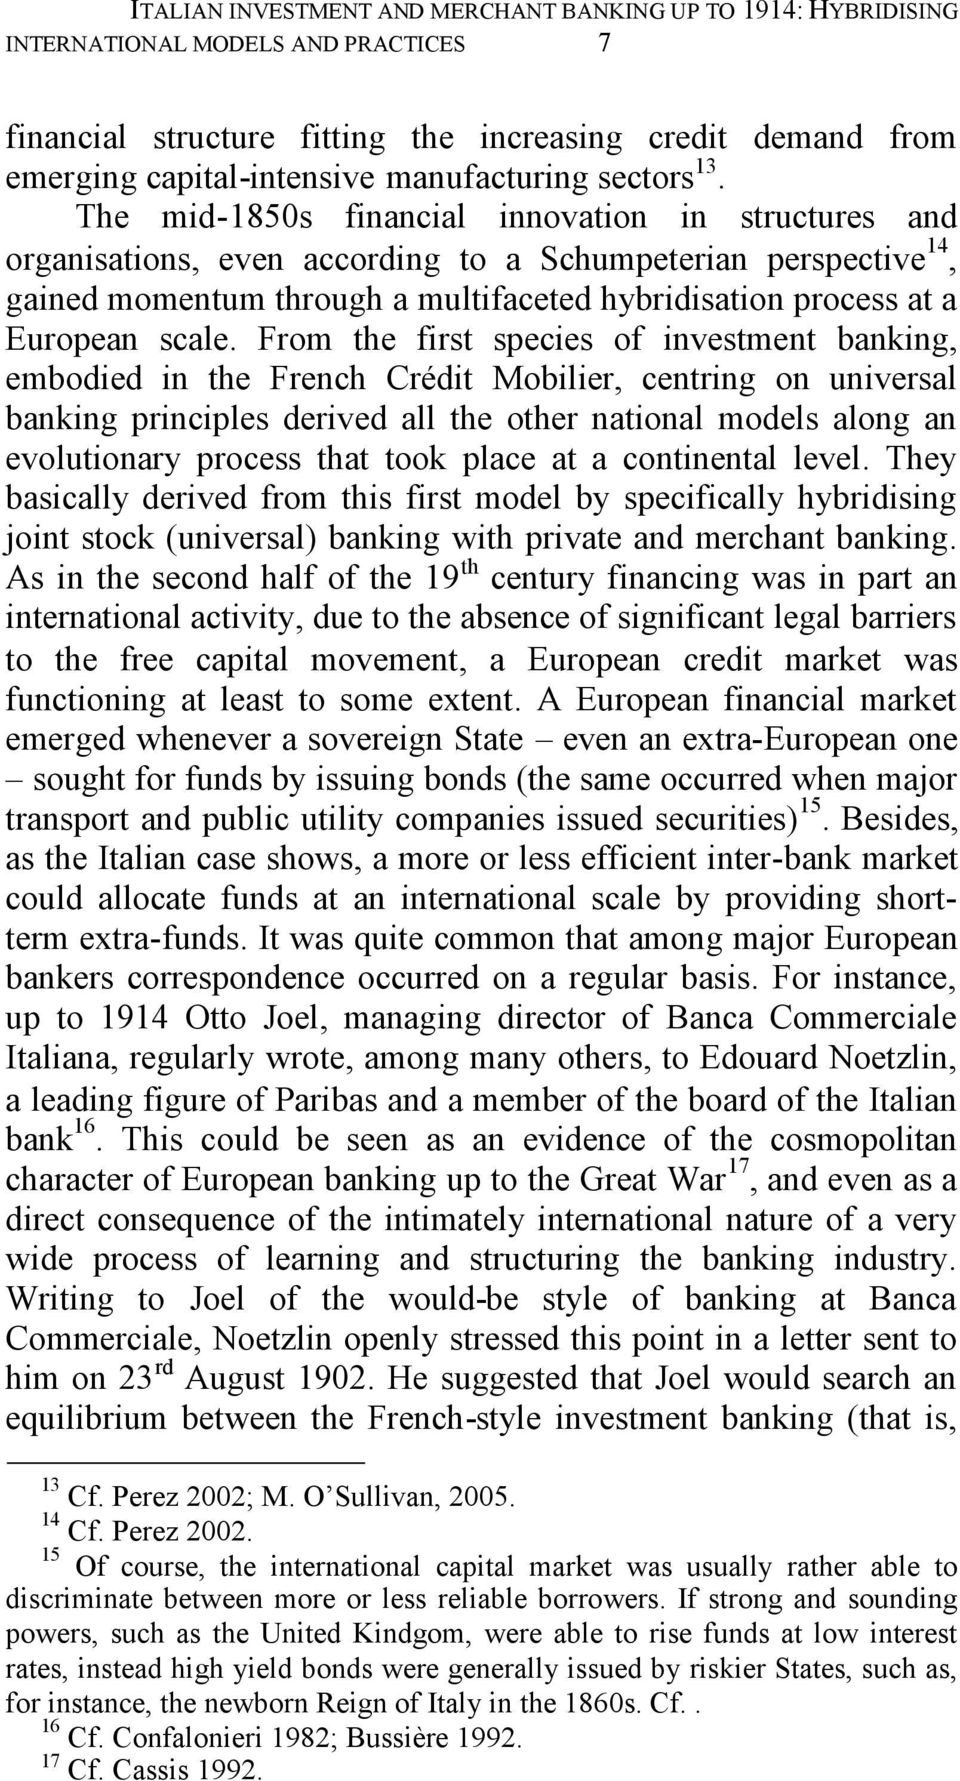 The mid-1850s financial innovation in structures and organisations, even according to a Schumpeterian perspective 14, gained momentum through a multifaceted hybridisation process at a European scale.